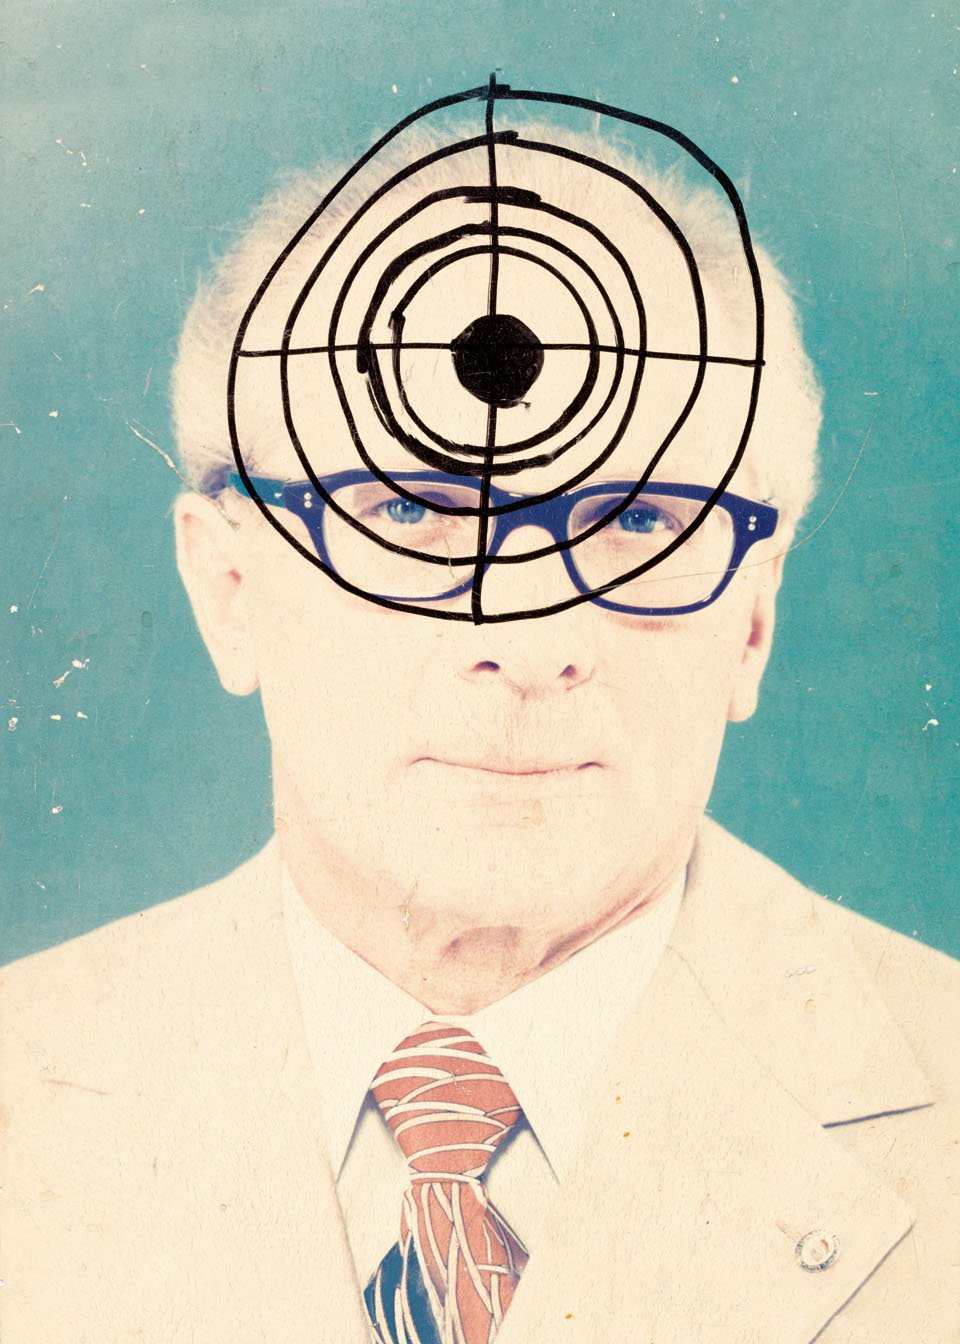 Erich Honecker in the Crosshairs, modified in 1989